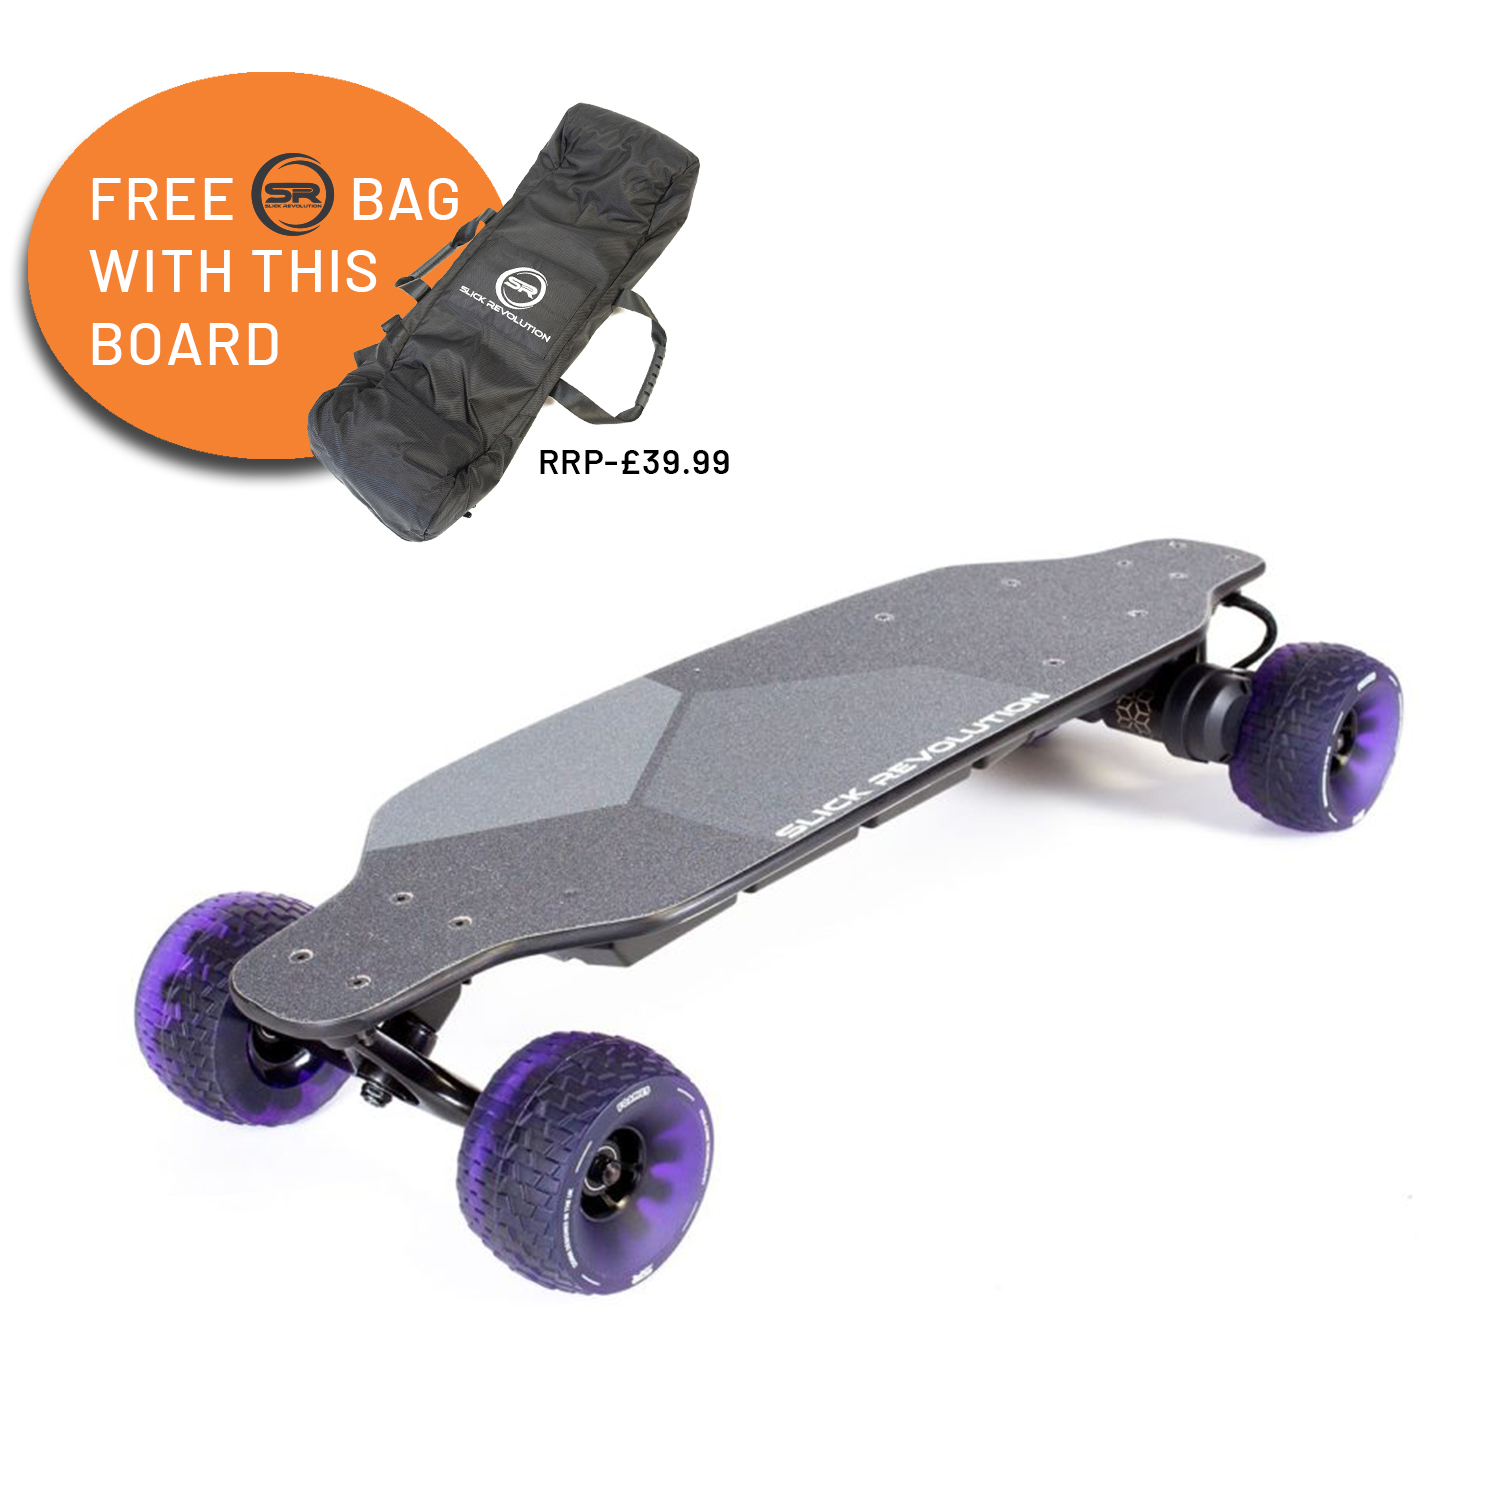 slick revolution carver electric skateboard with a free bag